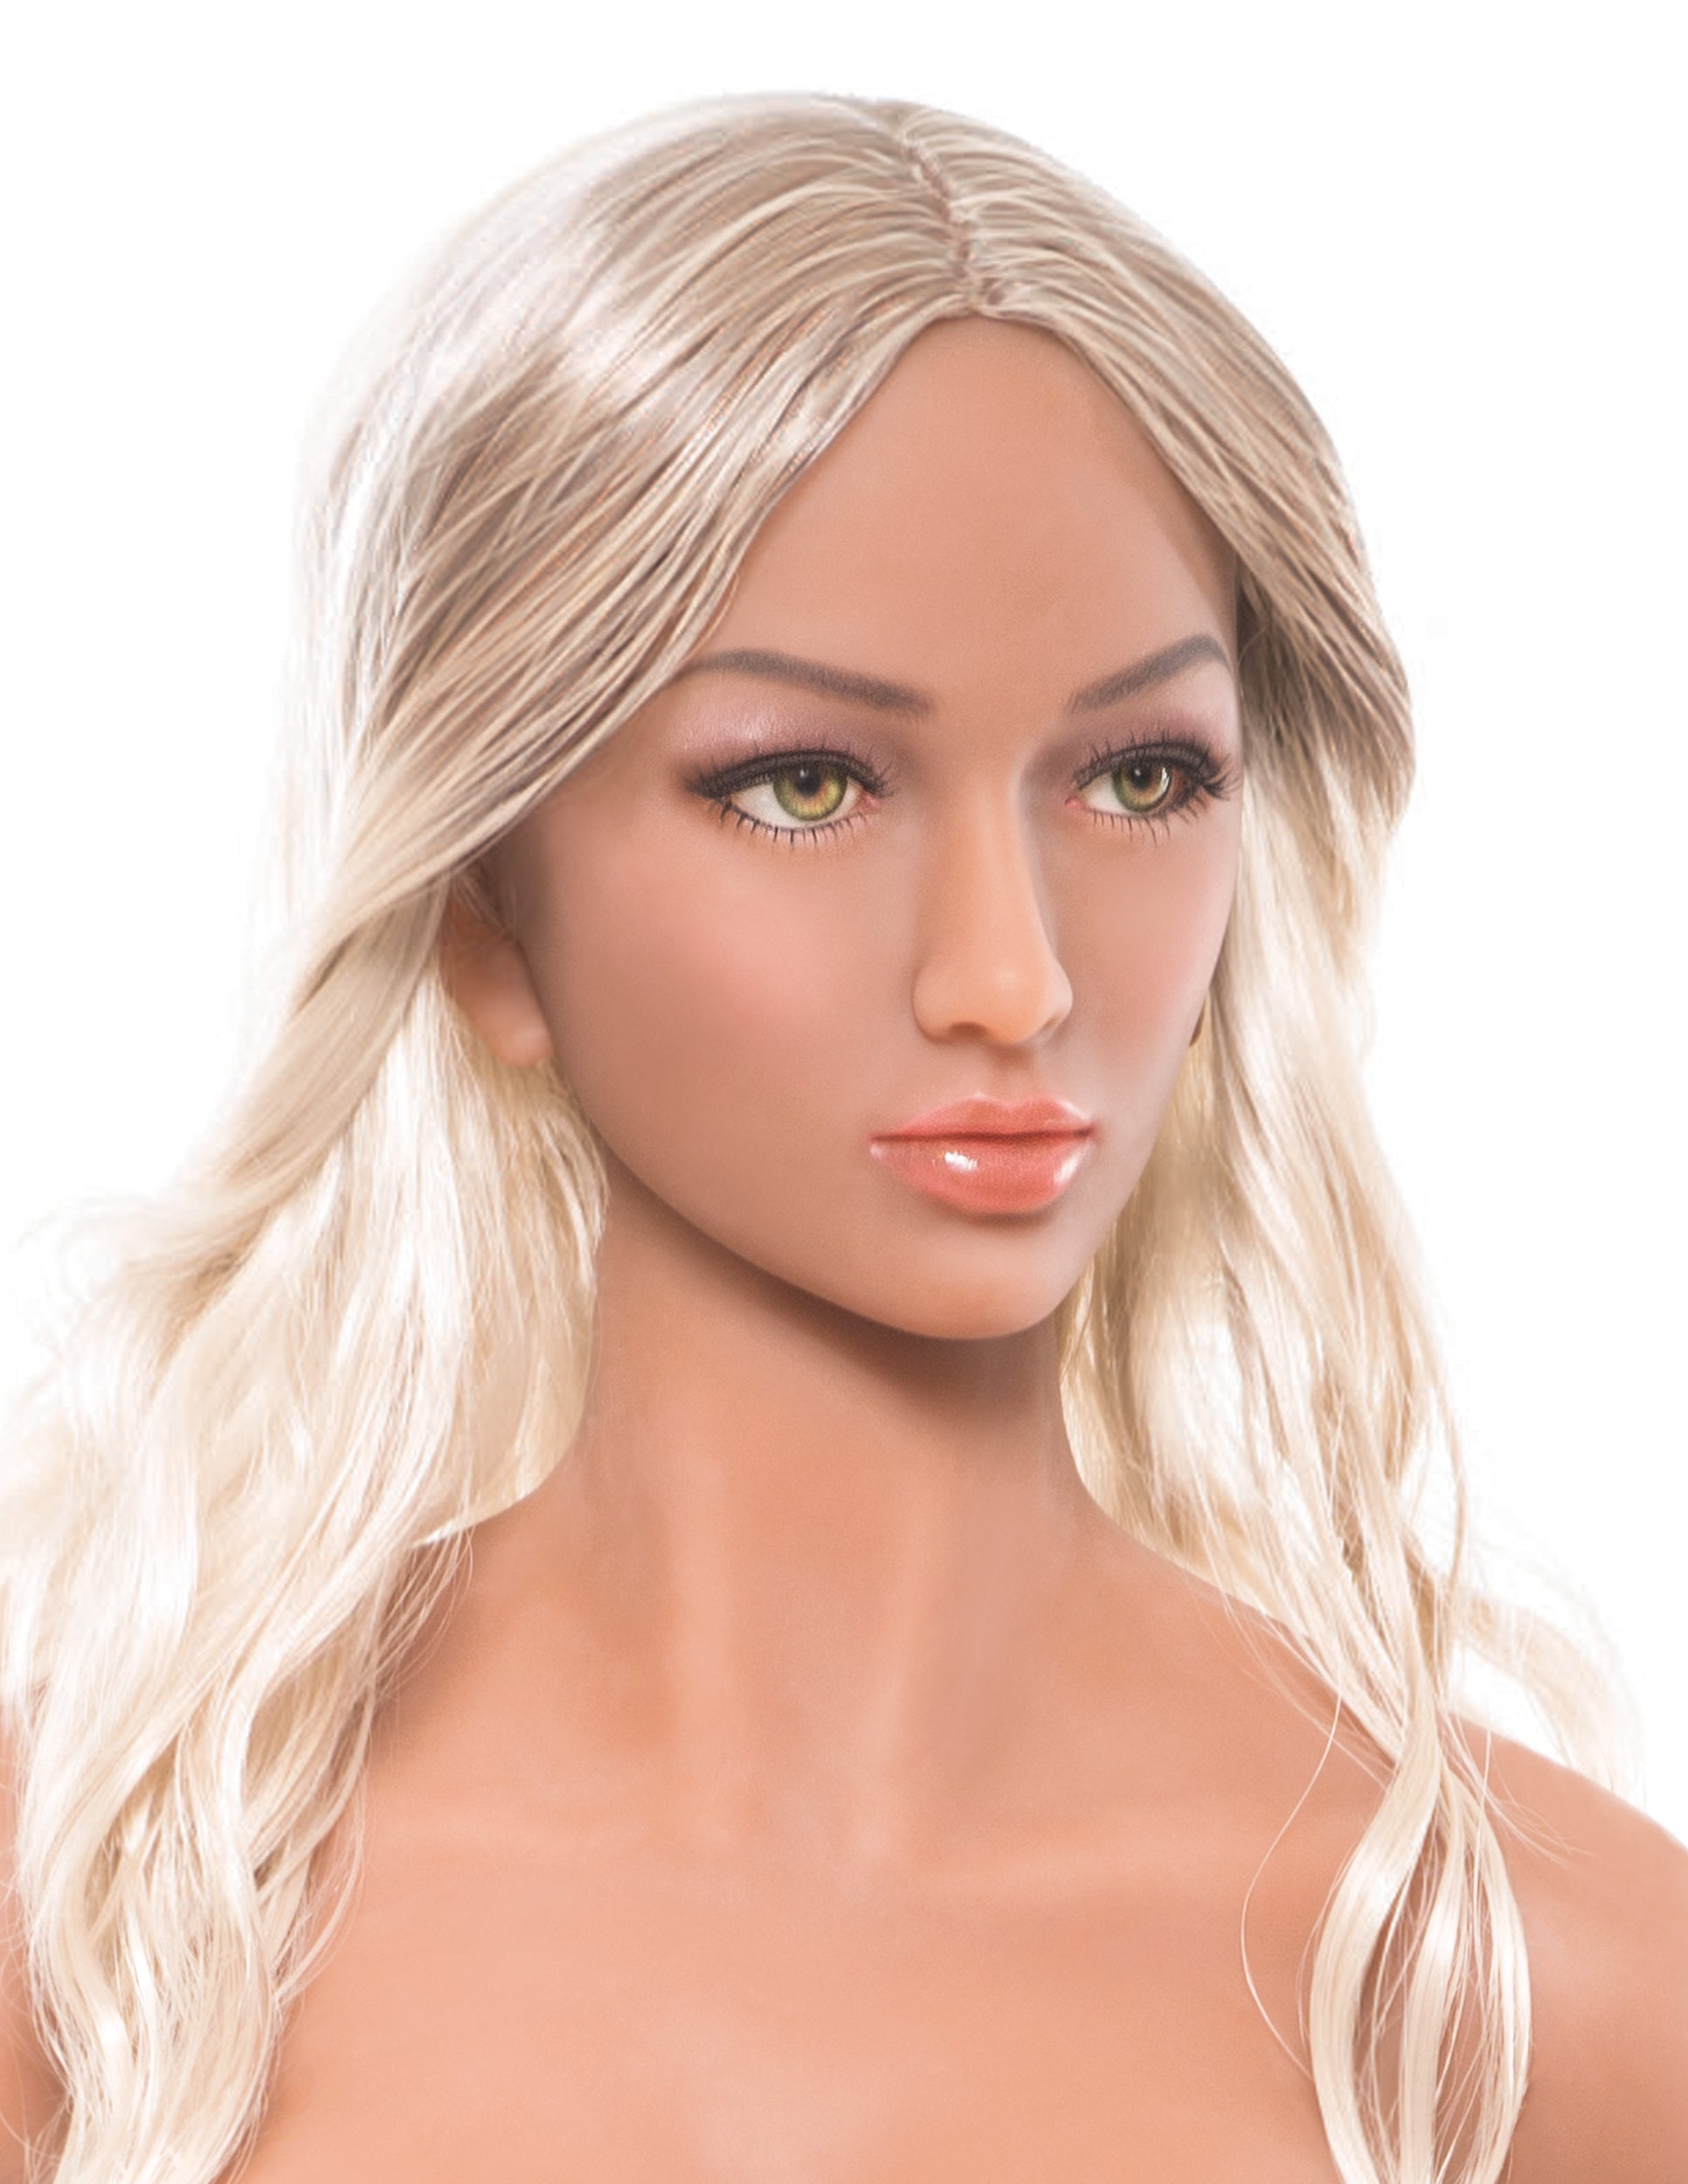 Ultimate Fantasy Dolls - Kitty head and shoulders only